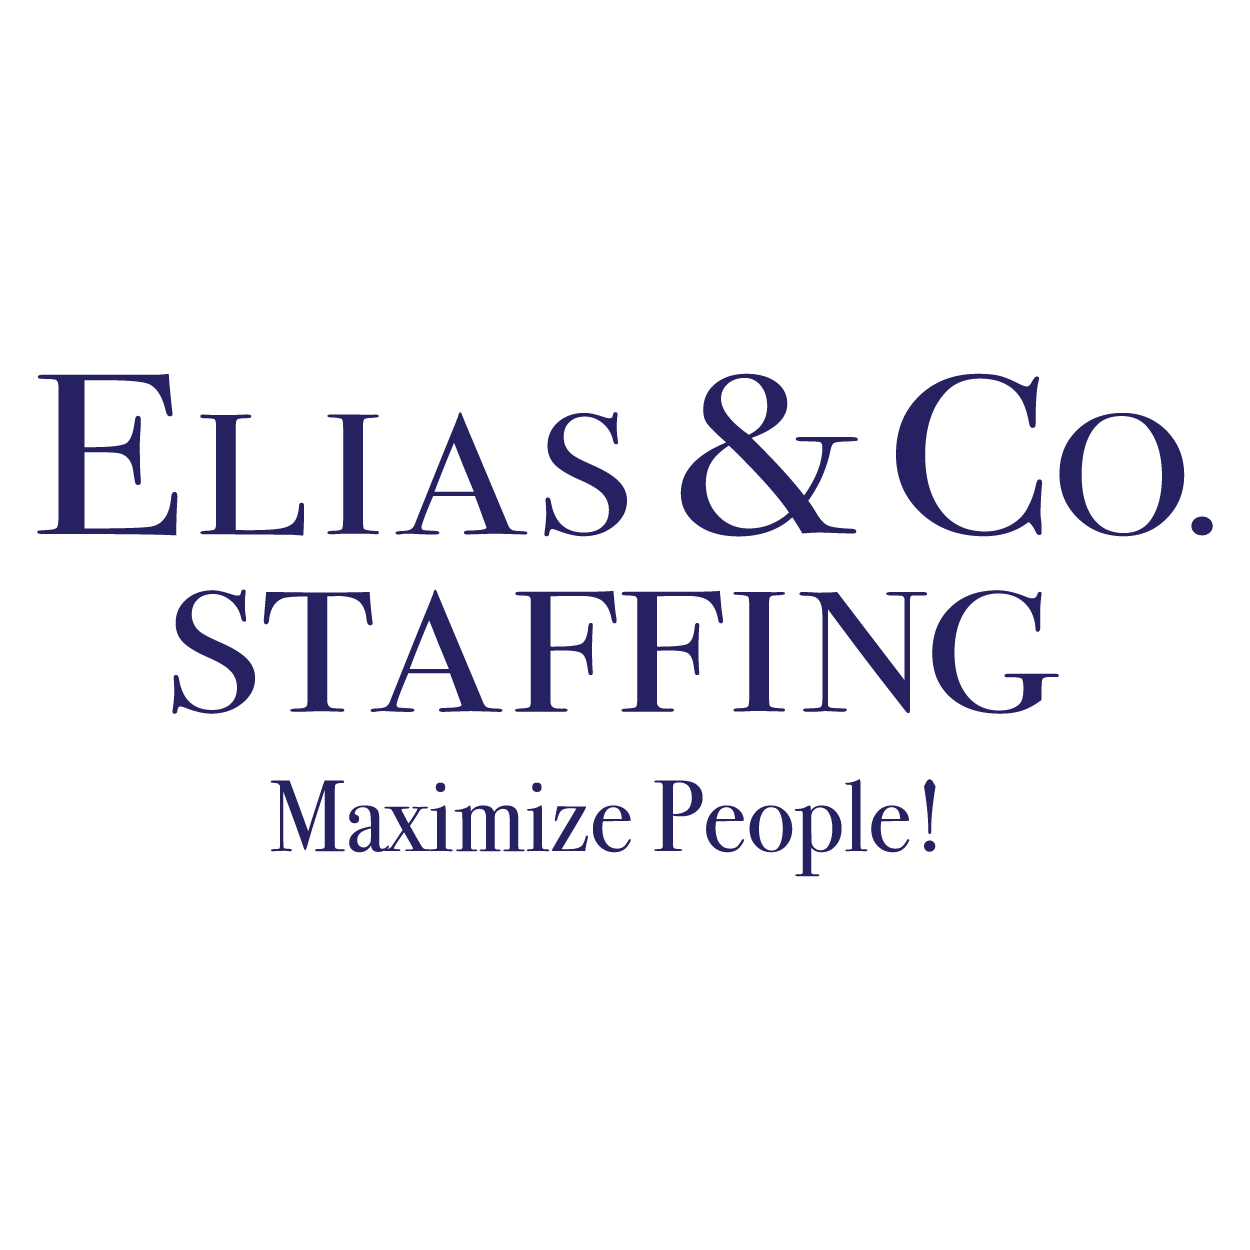 Elias & Co Staffing